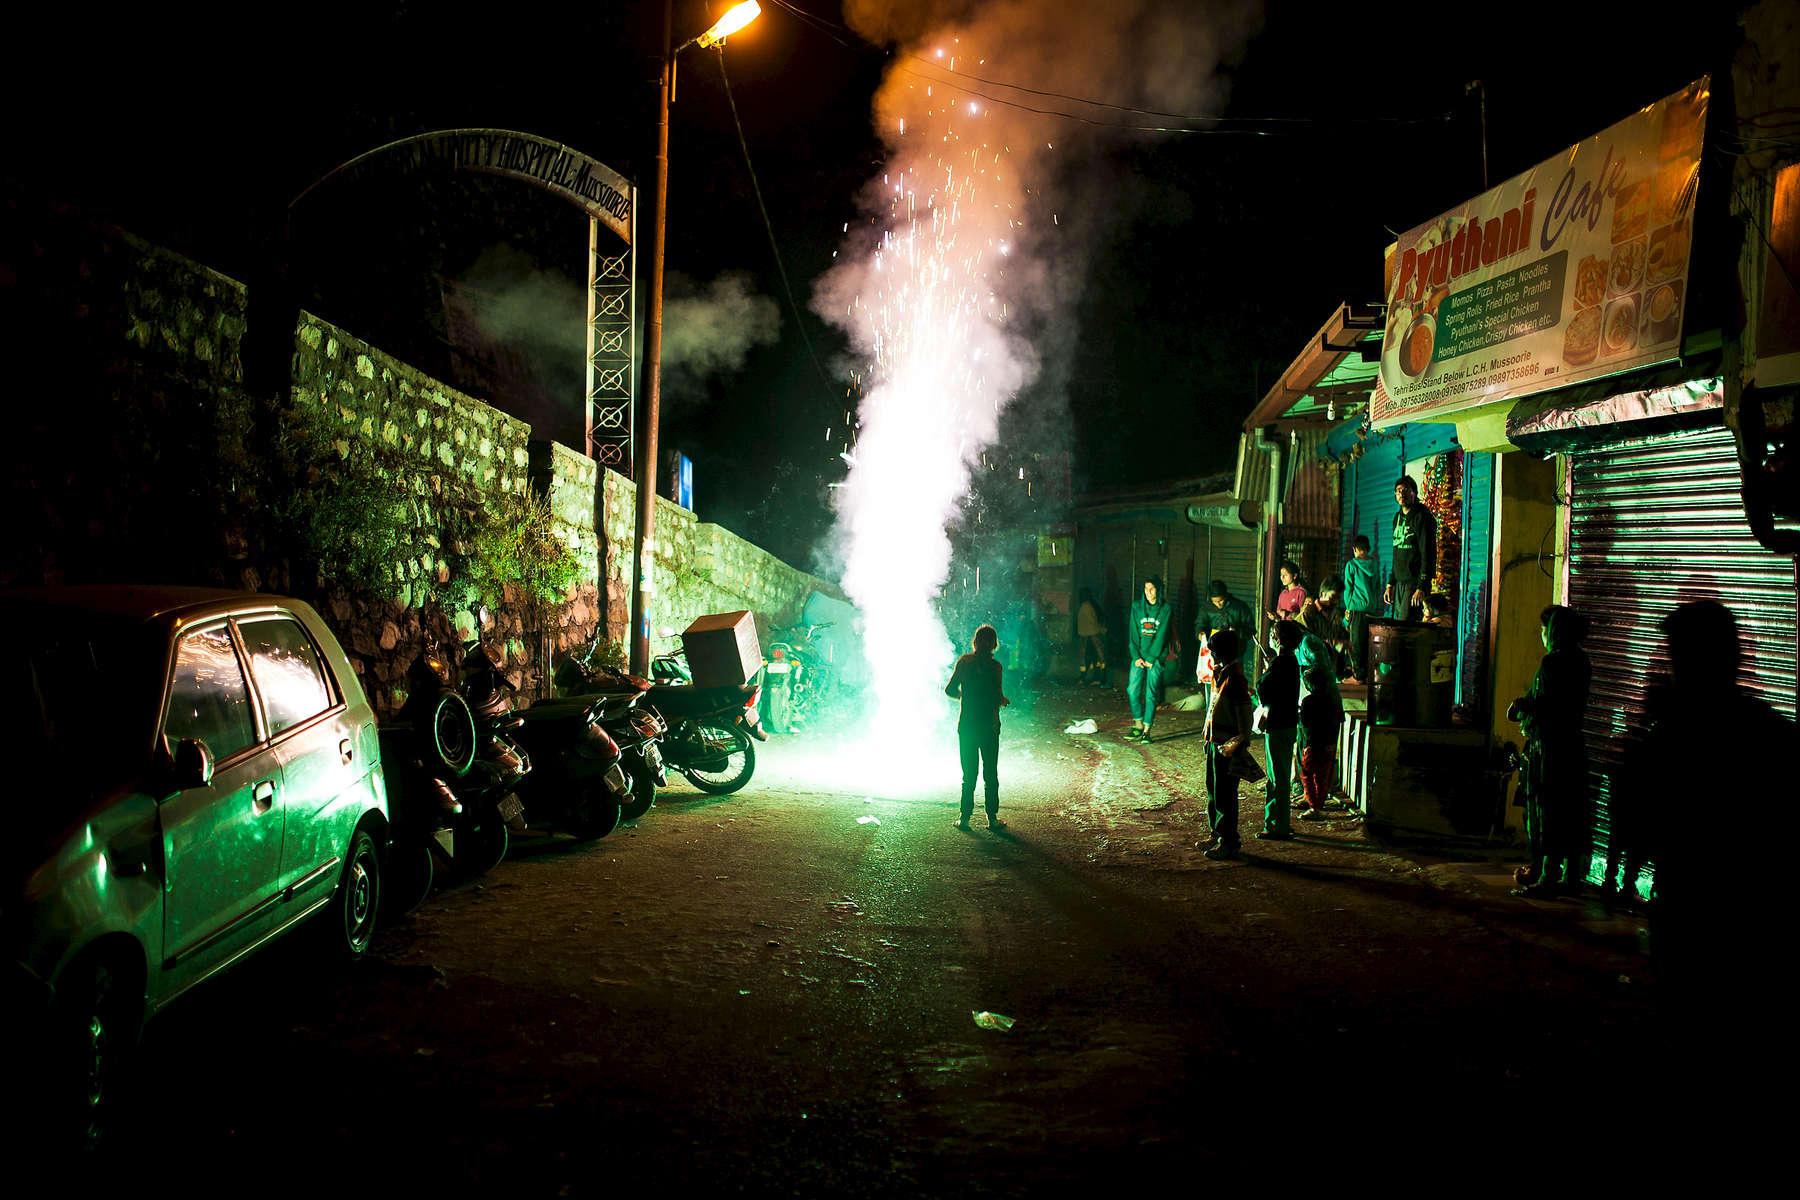 Honorable Mention | General NewsCaleb Smallwood, triad city beatChildren set off fireworks in the streets of Mussoorie, India during the Hindu festival of lights, Dewali.